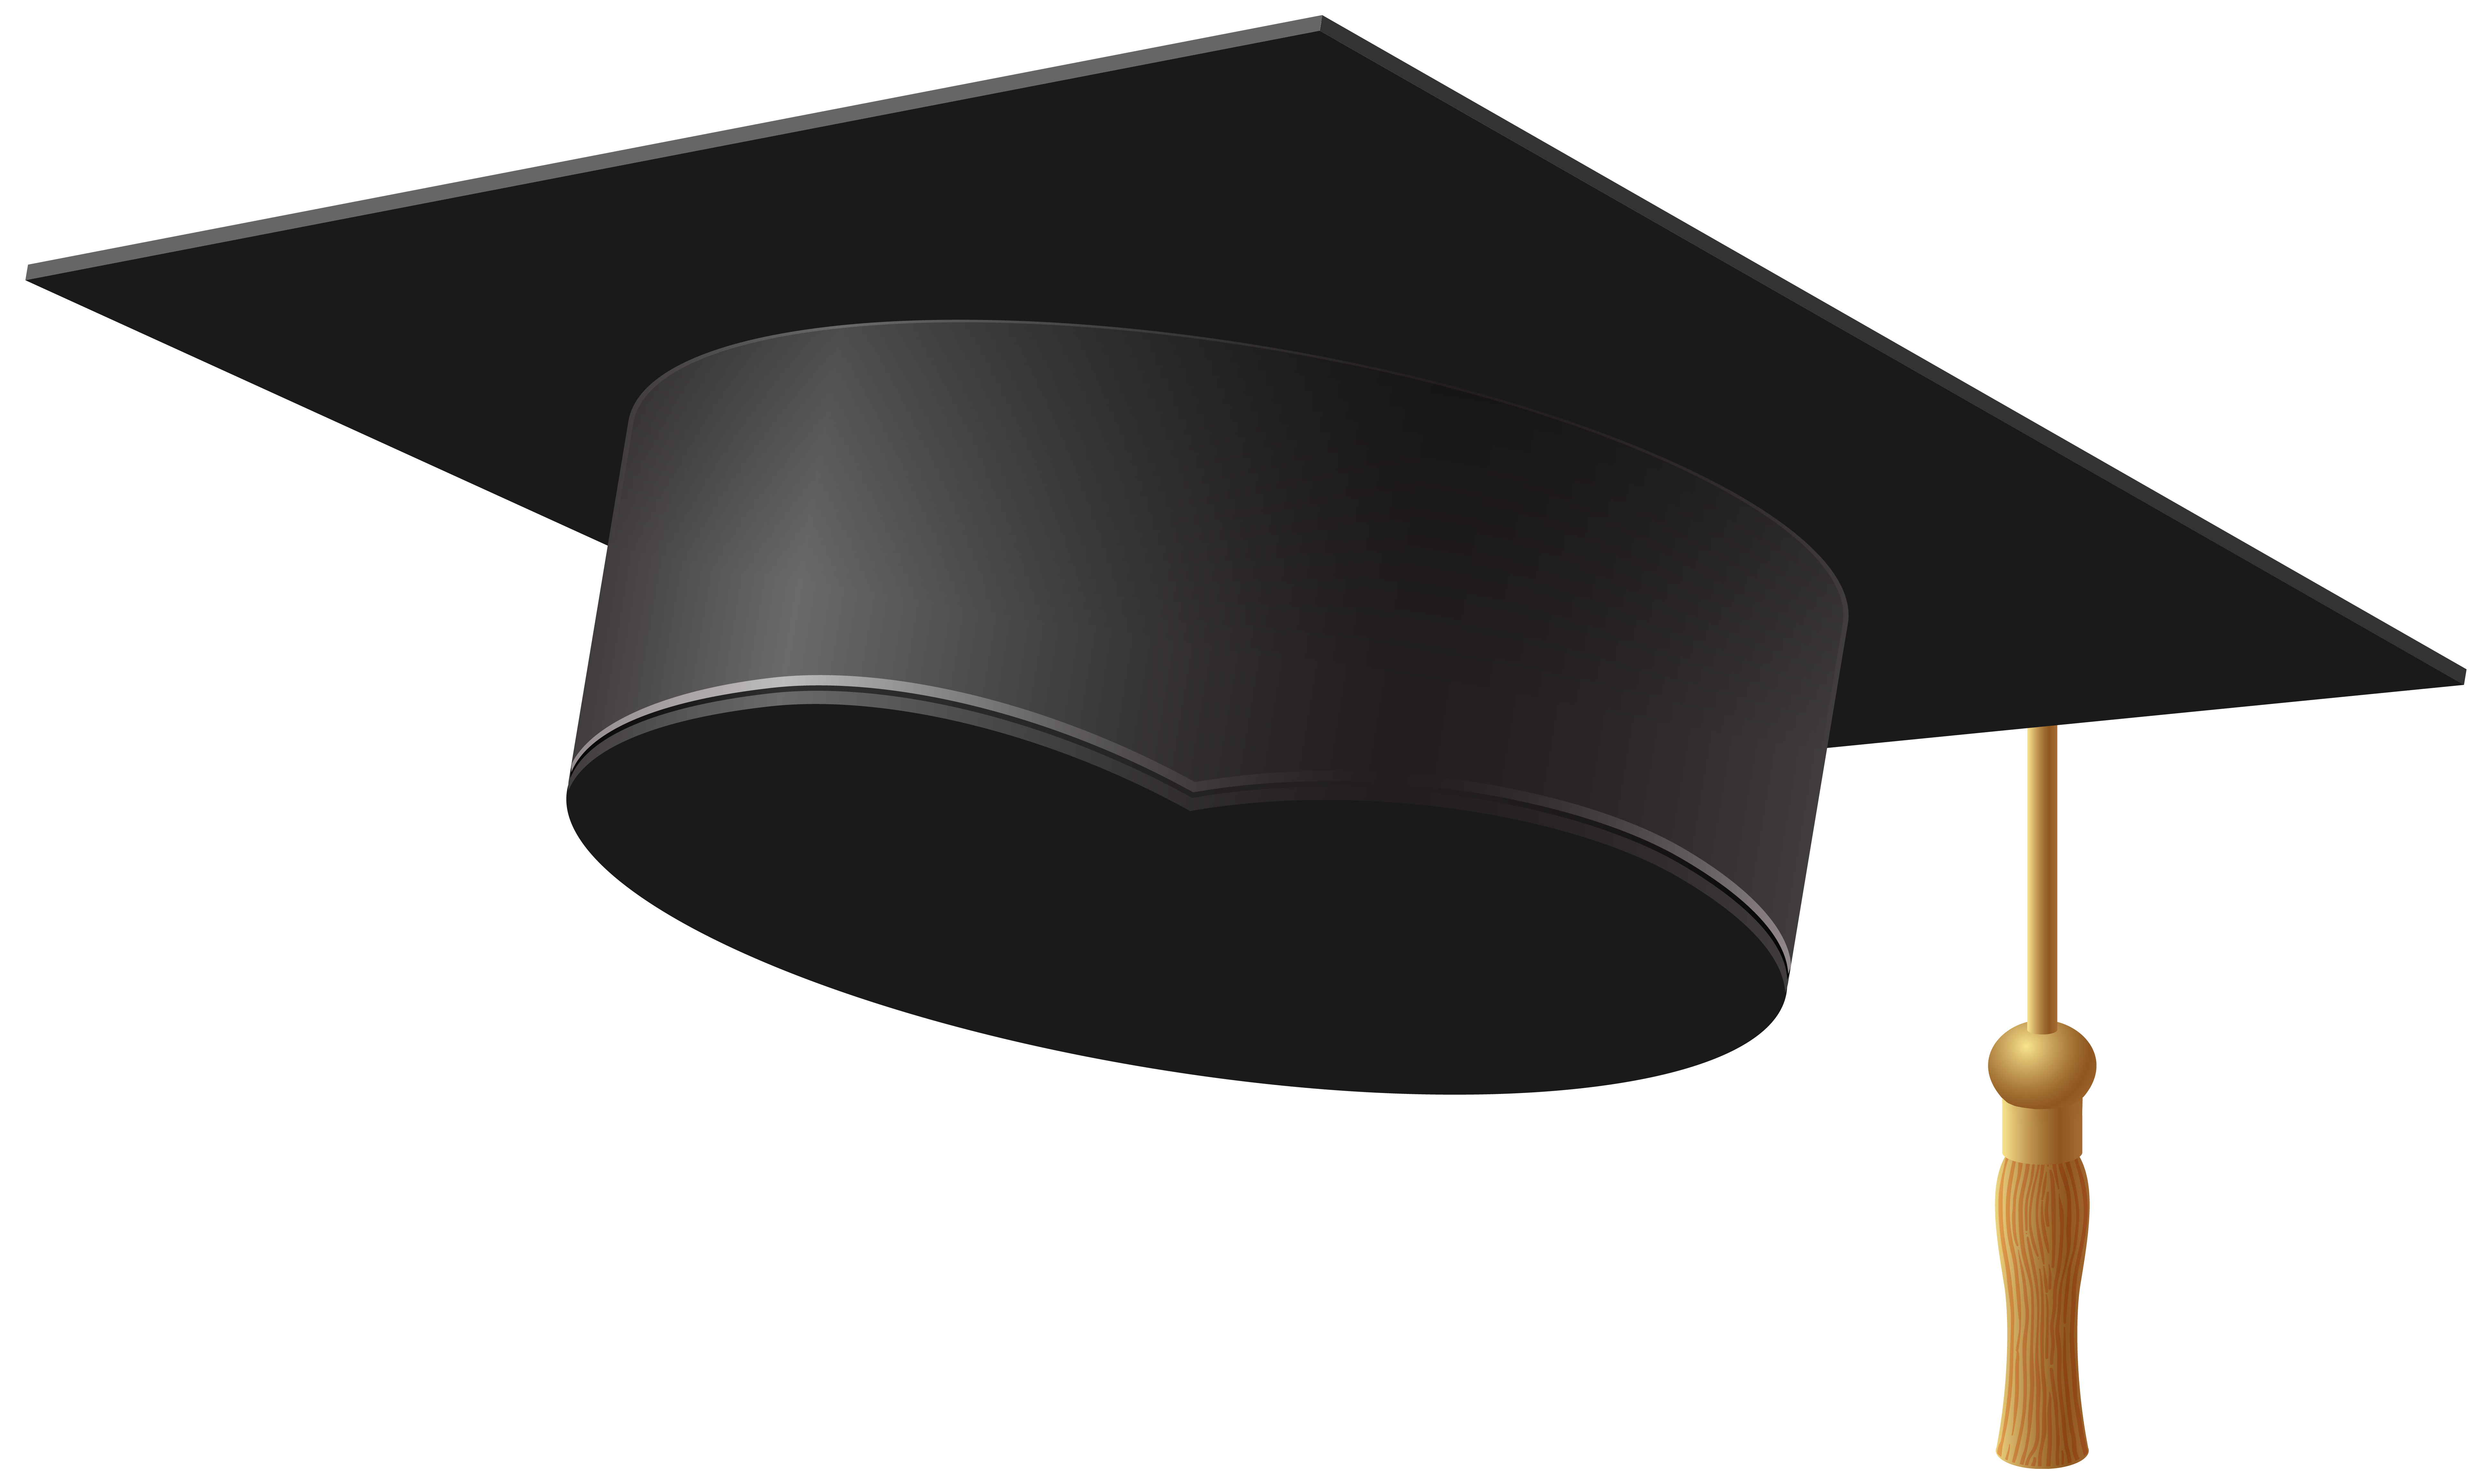 Black Hat Graduation Png #34890 - Free Icons And PNG ...